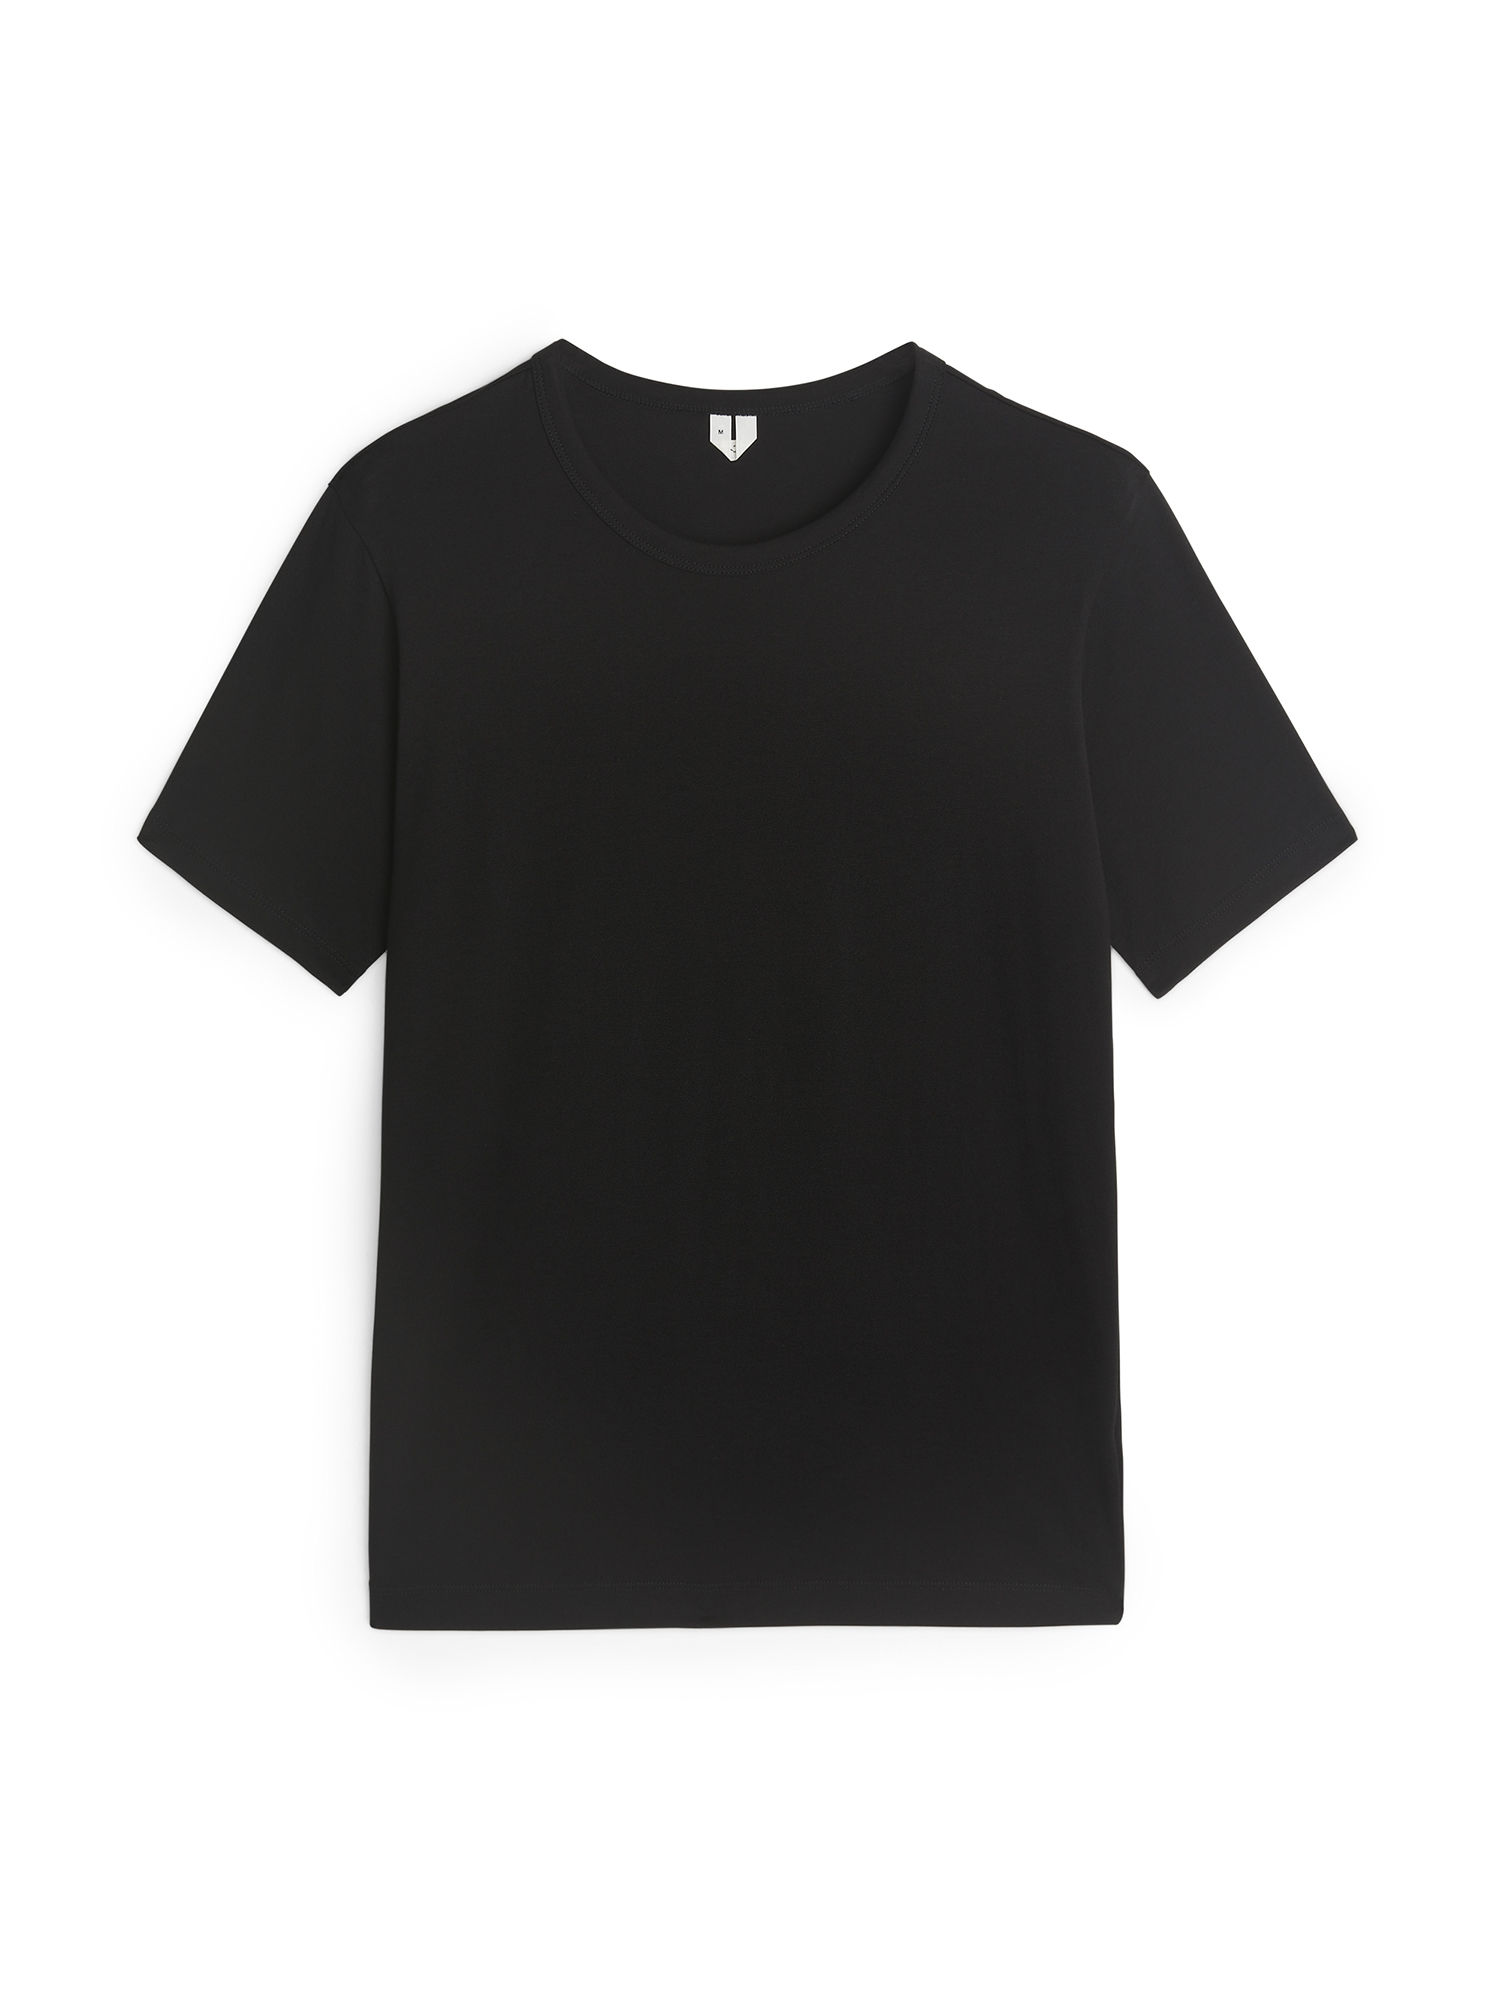 Fabric Swatch image of Arket 150 gsm pima cotton t-shirt in black